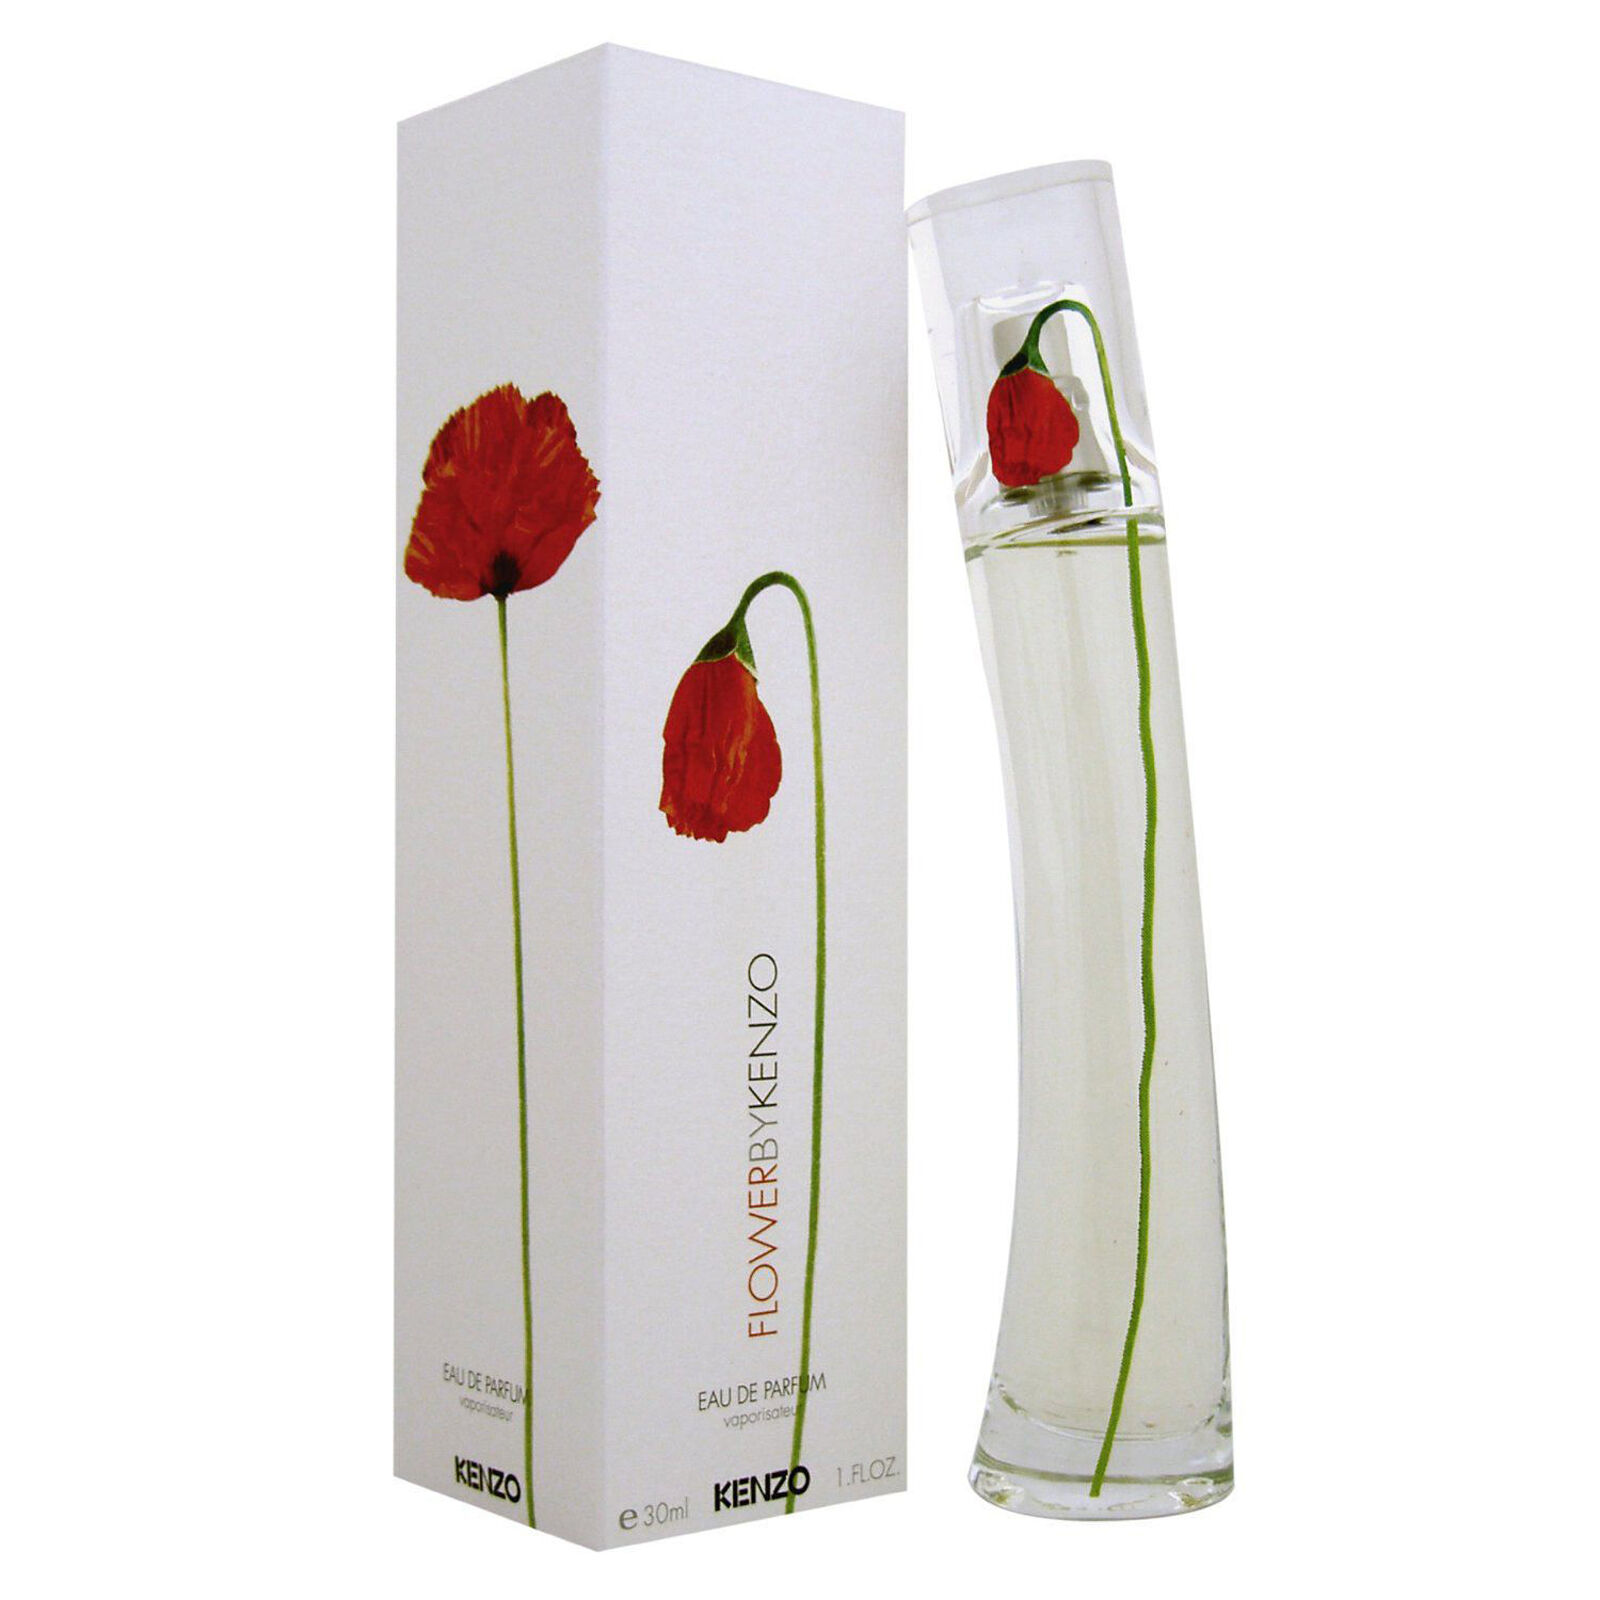 Mujer Colonia About 30 Flower Her Perfume Kenzo Edp By Details Femme Ml Woman FKlT1cJ